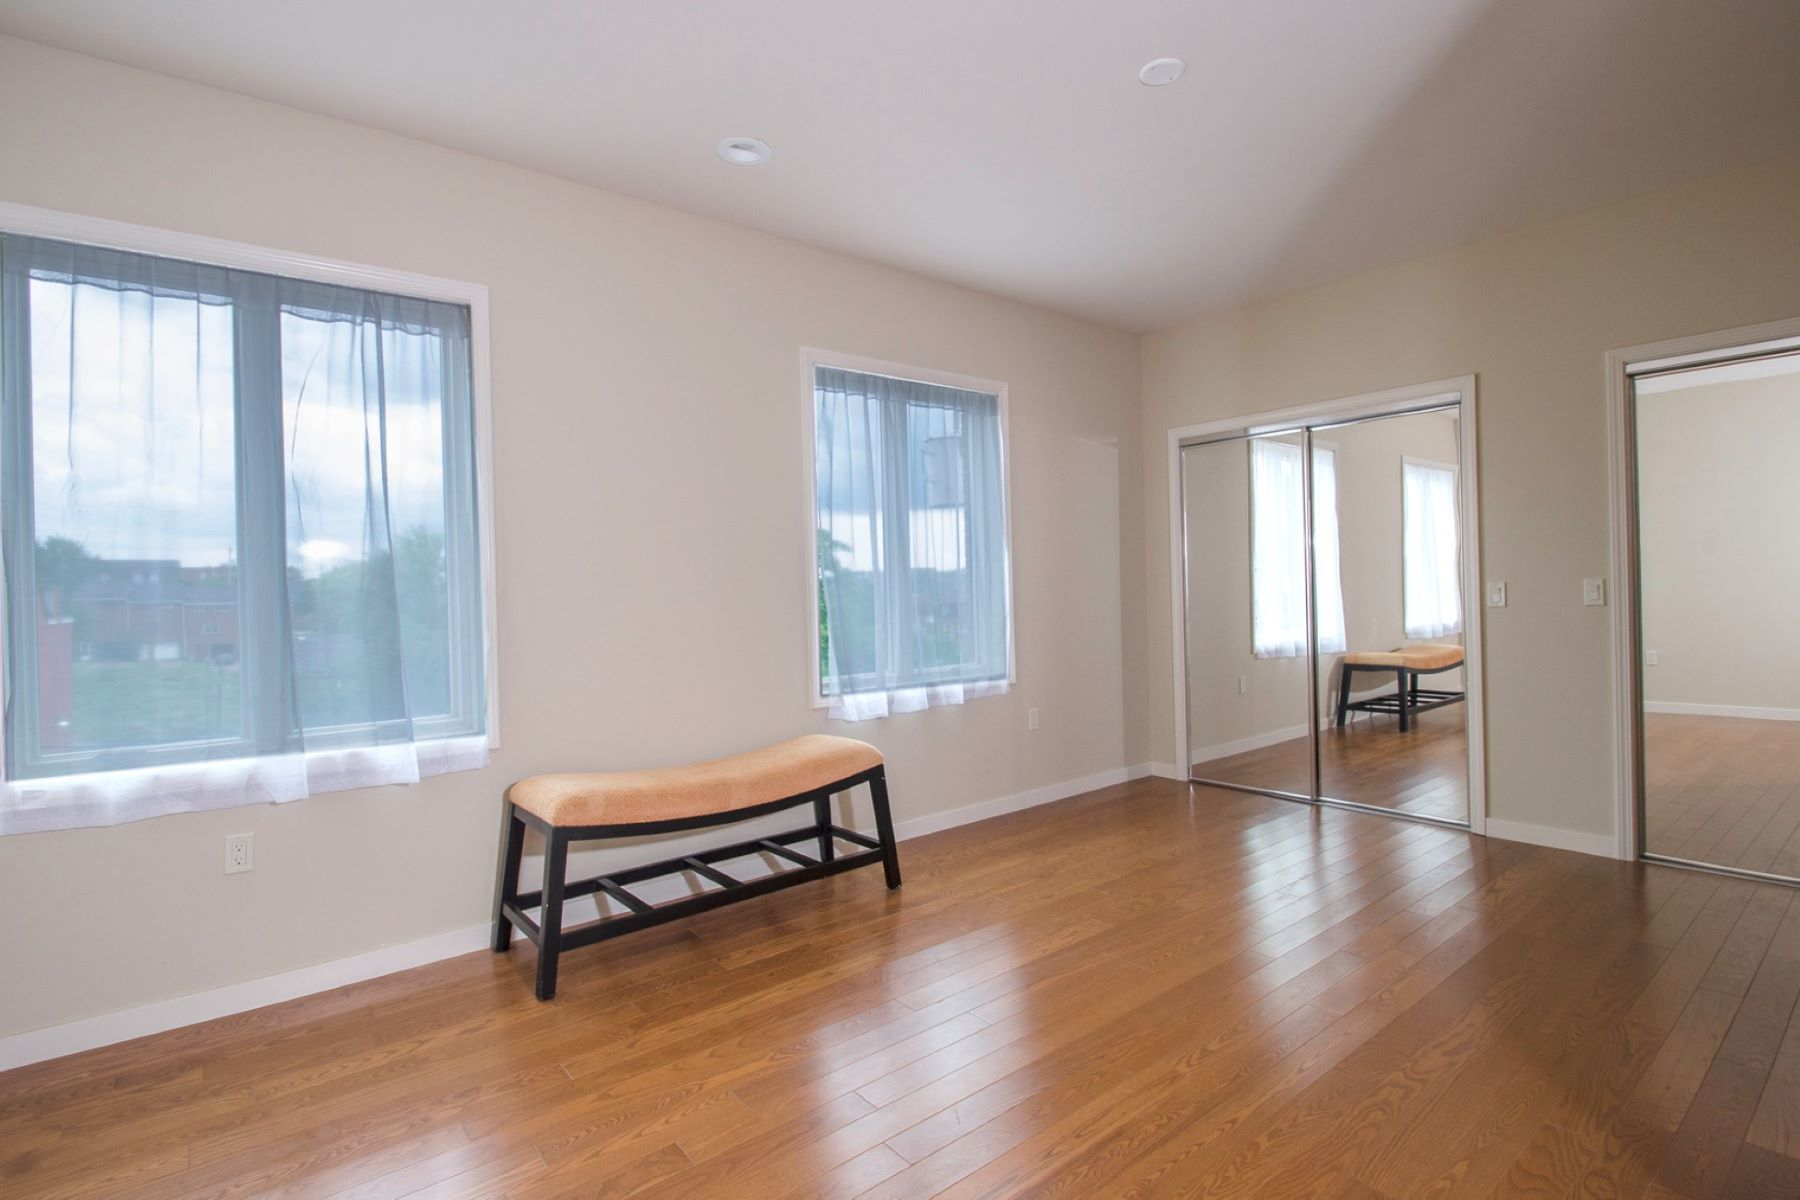 Additional photo for property listing at Riverview Ridge Condos 1825 Arcena Street #2 Pittsburgh, Pennsylvania 15219 United States